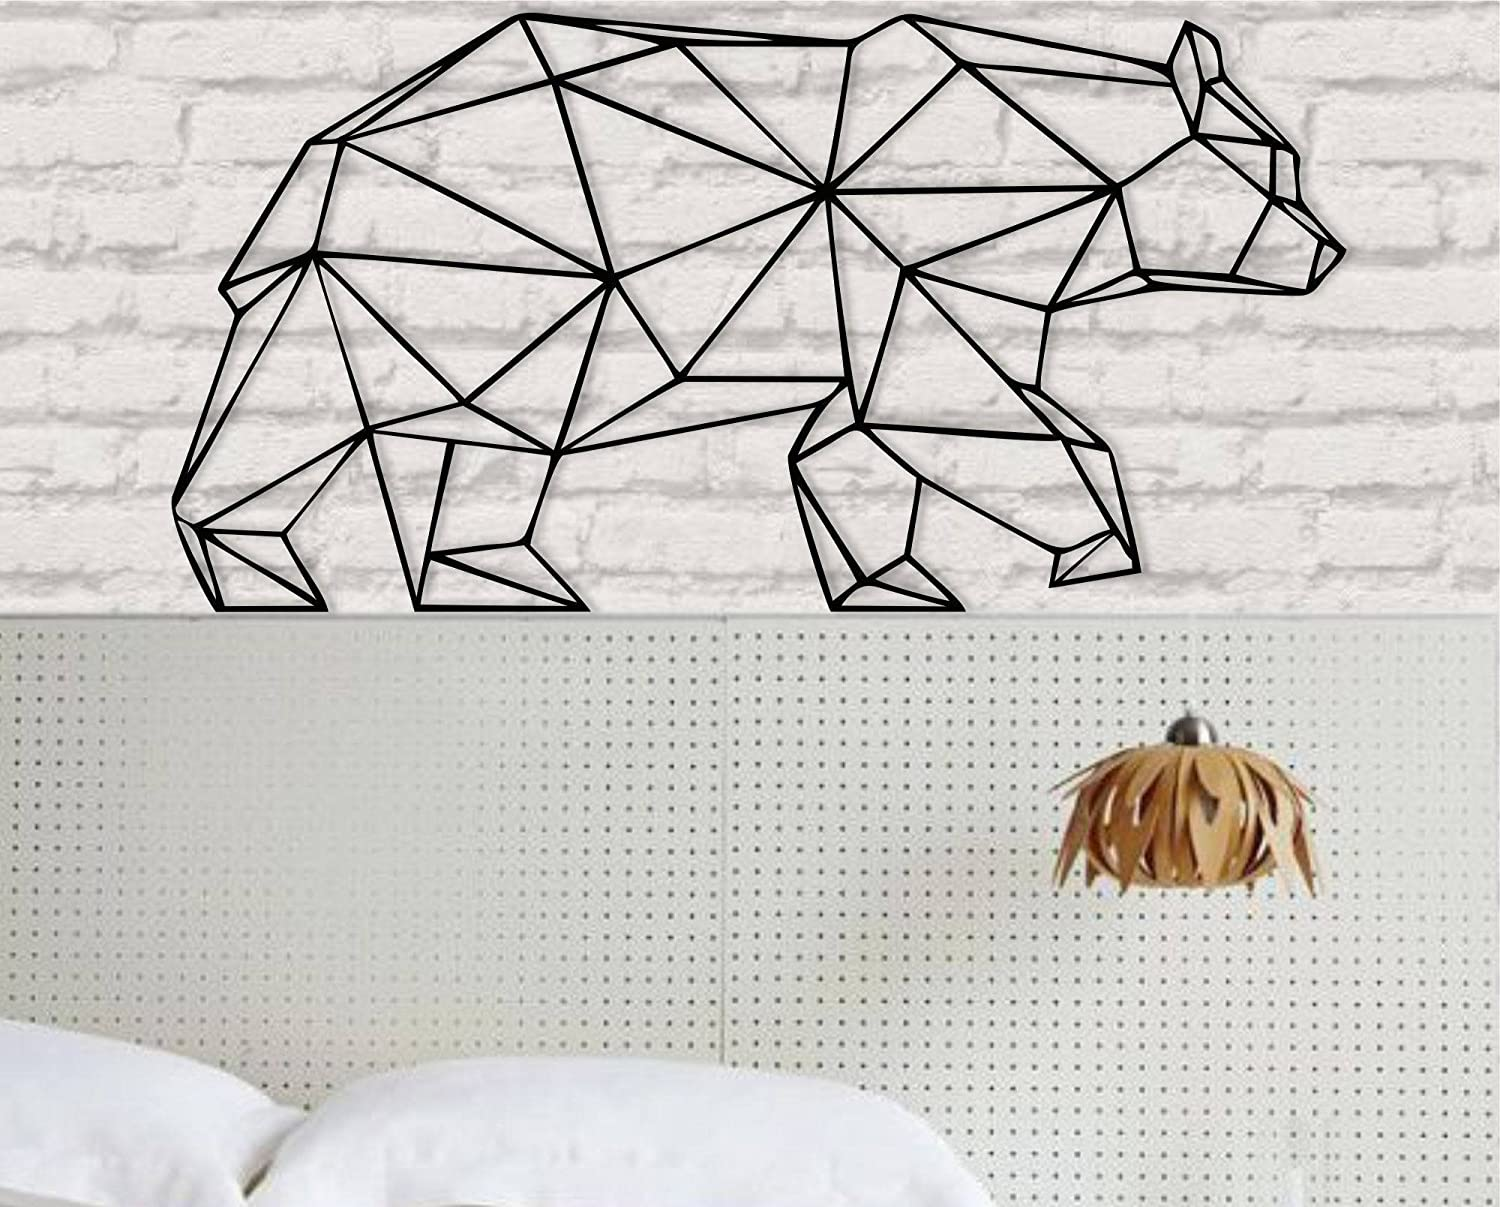 "Metal Wall Art - Geometric Bear -3D Wall Silhouette Metal Wall Decor Home Office Decoration Bedroom Living Room Decoration (24"" W x 12"" H/61x31cm)"